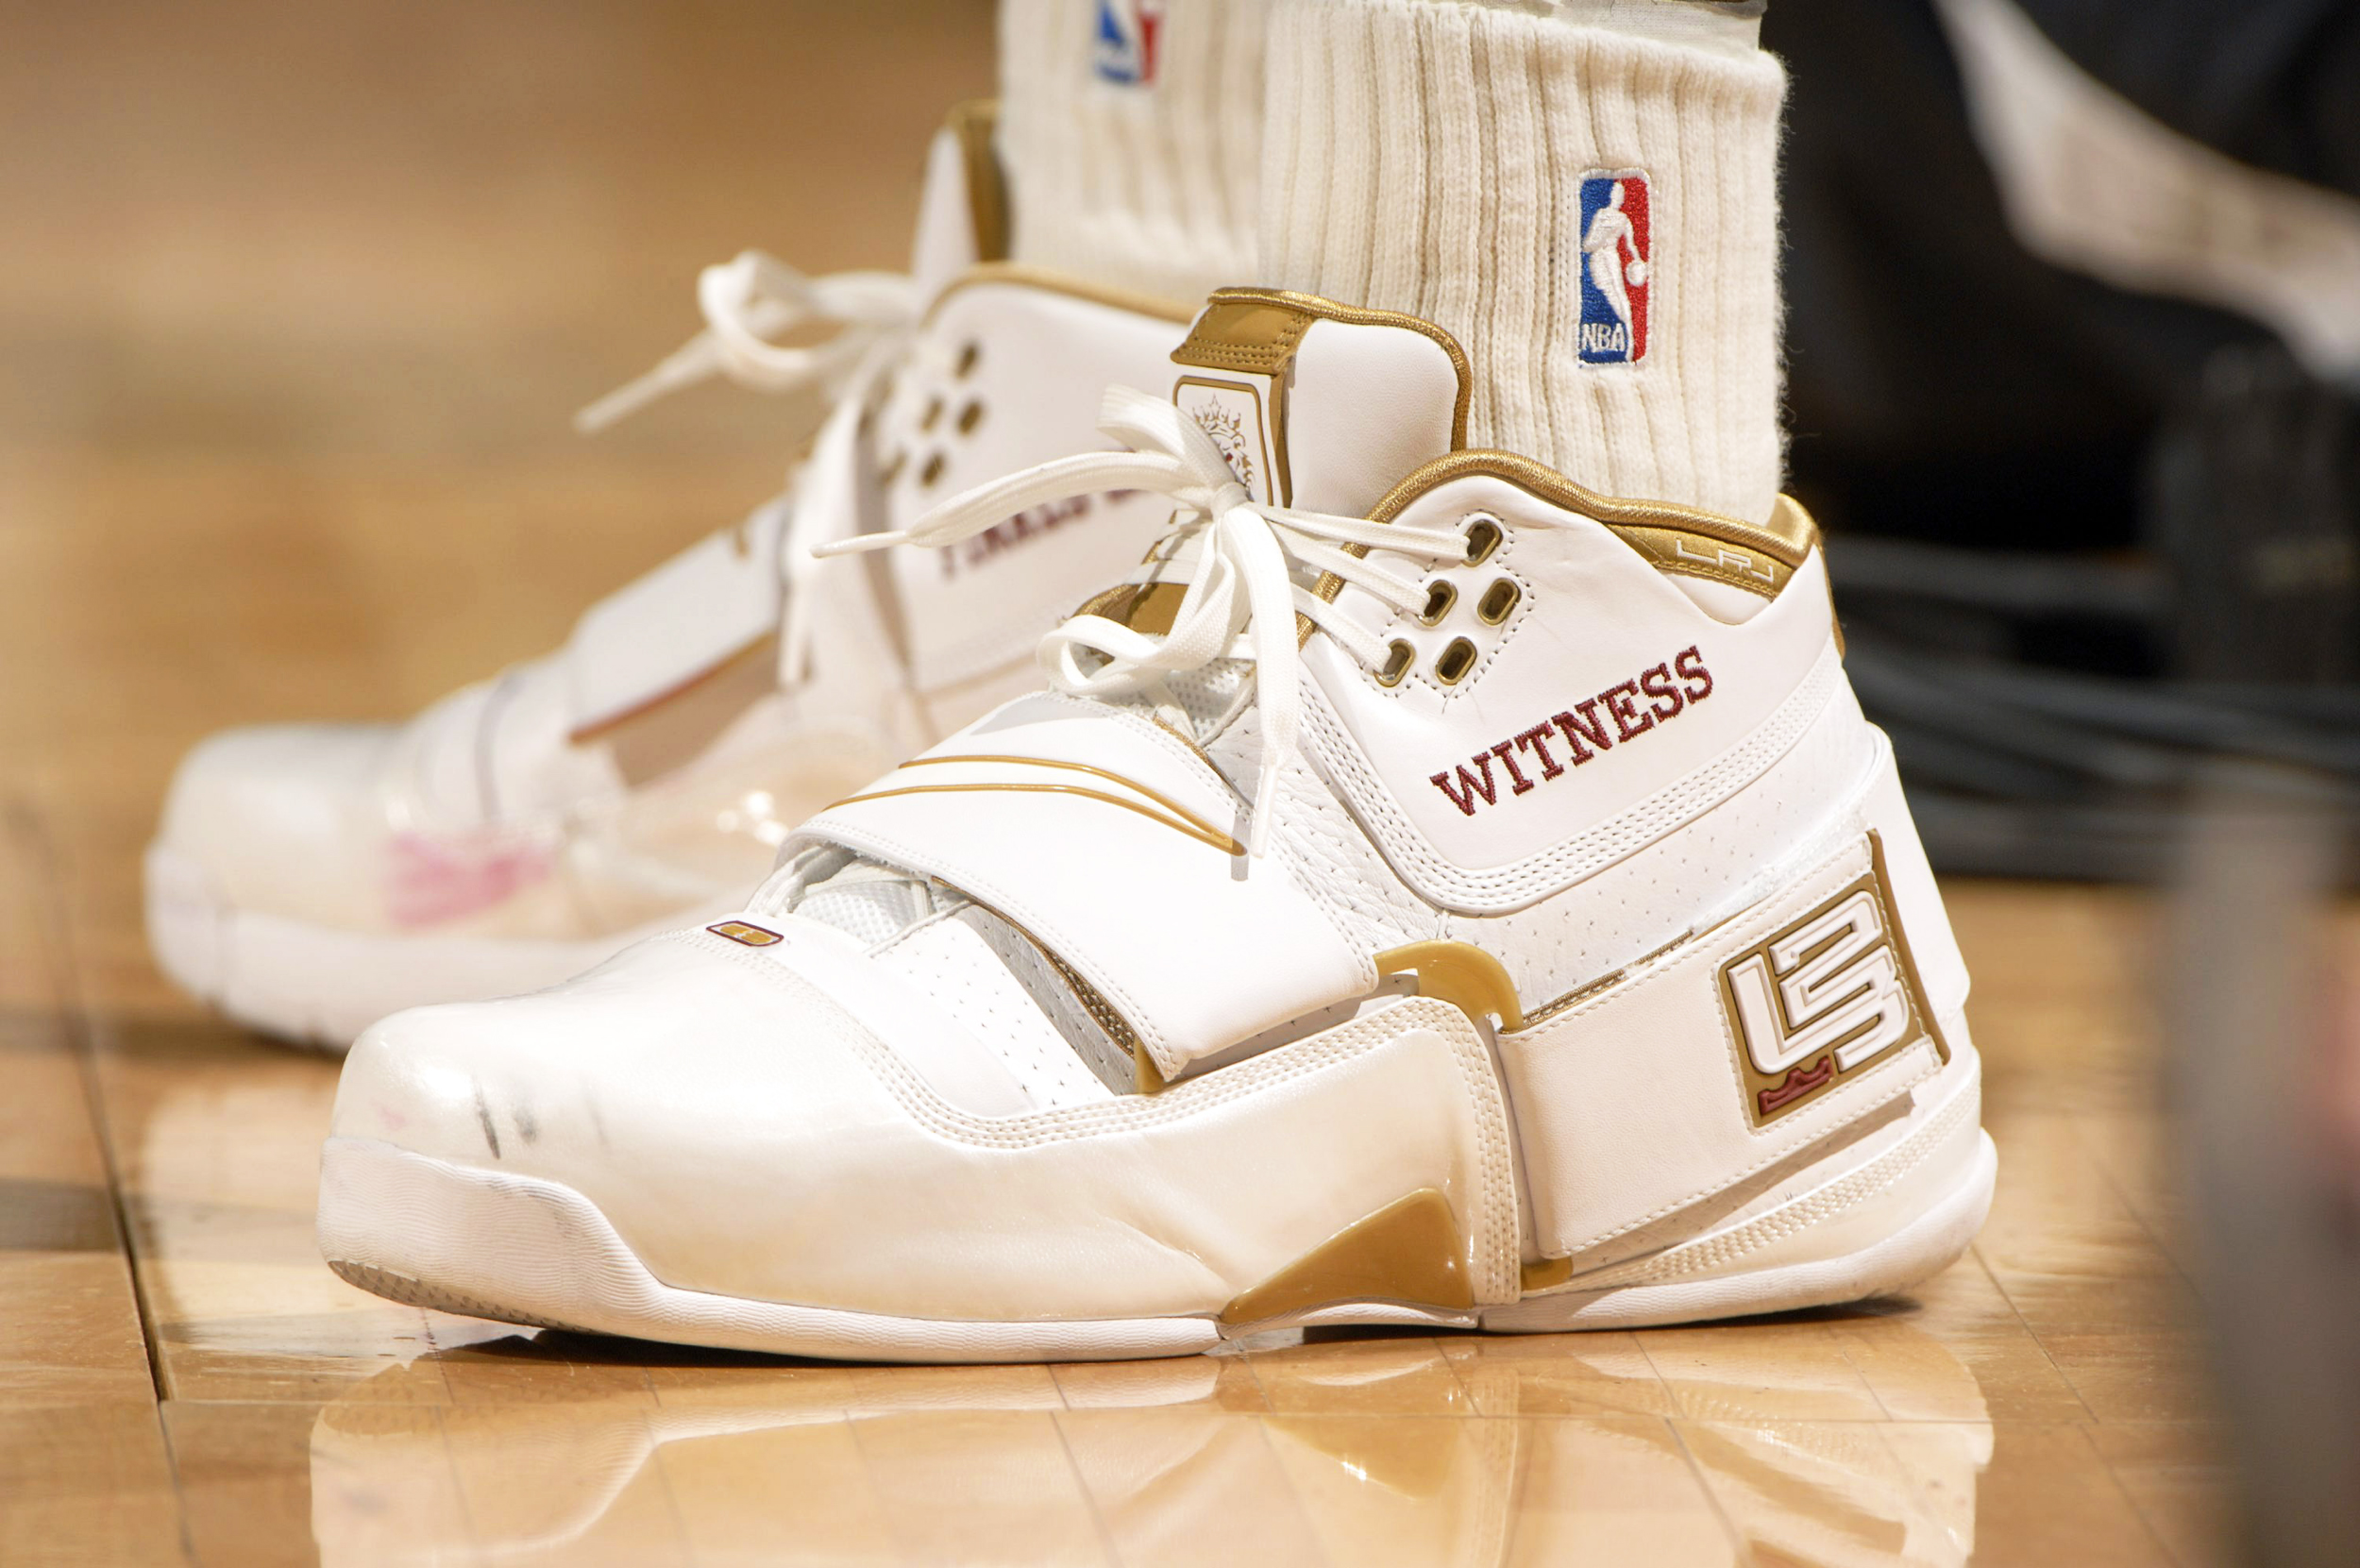 4a63f6de720a The most iconic sneakers from every NBA playoffs since 1997